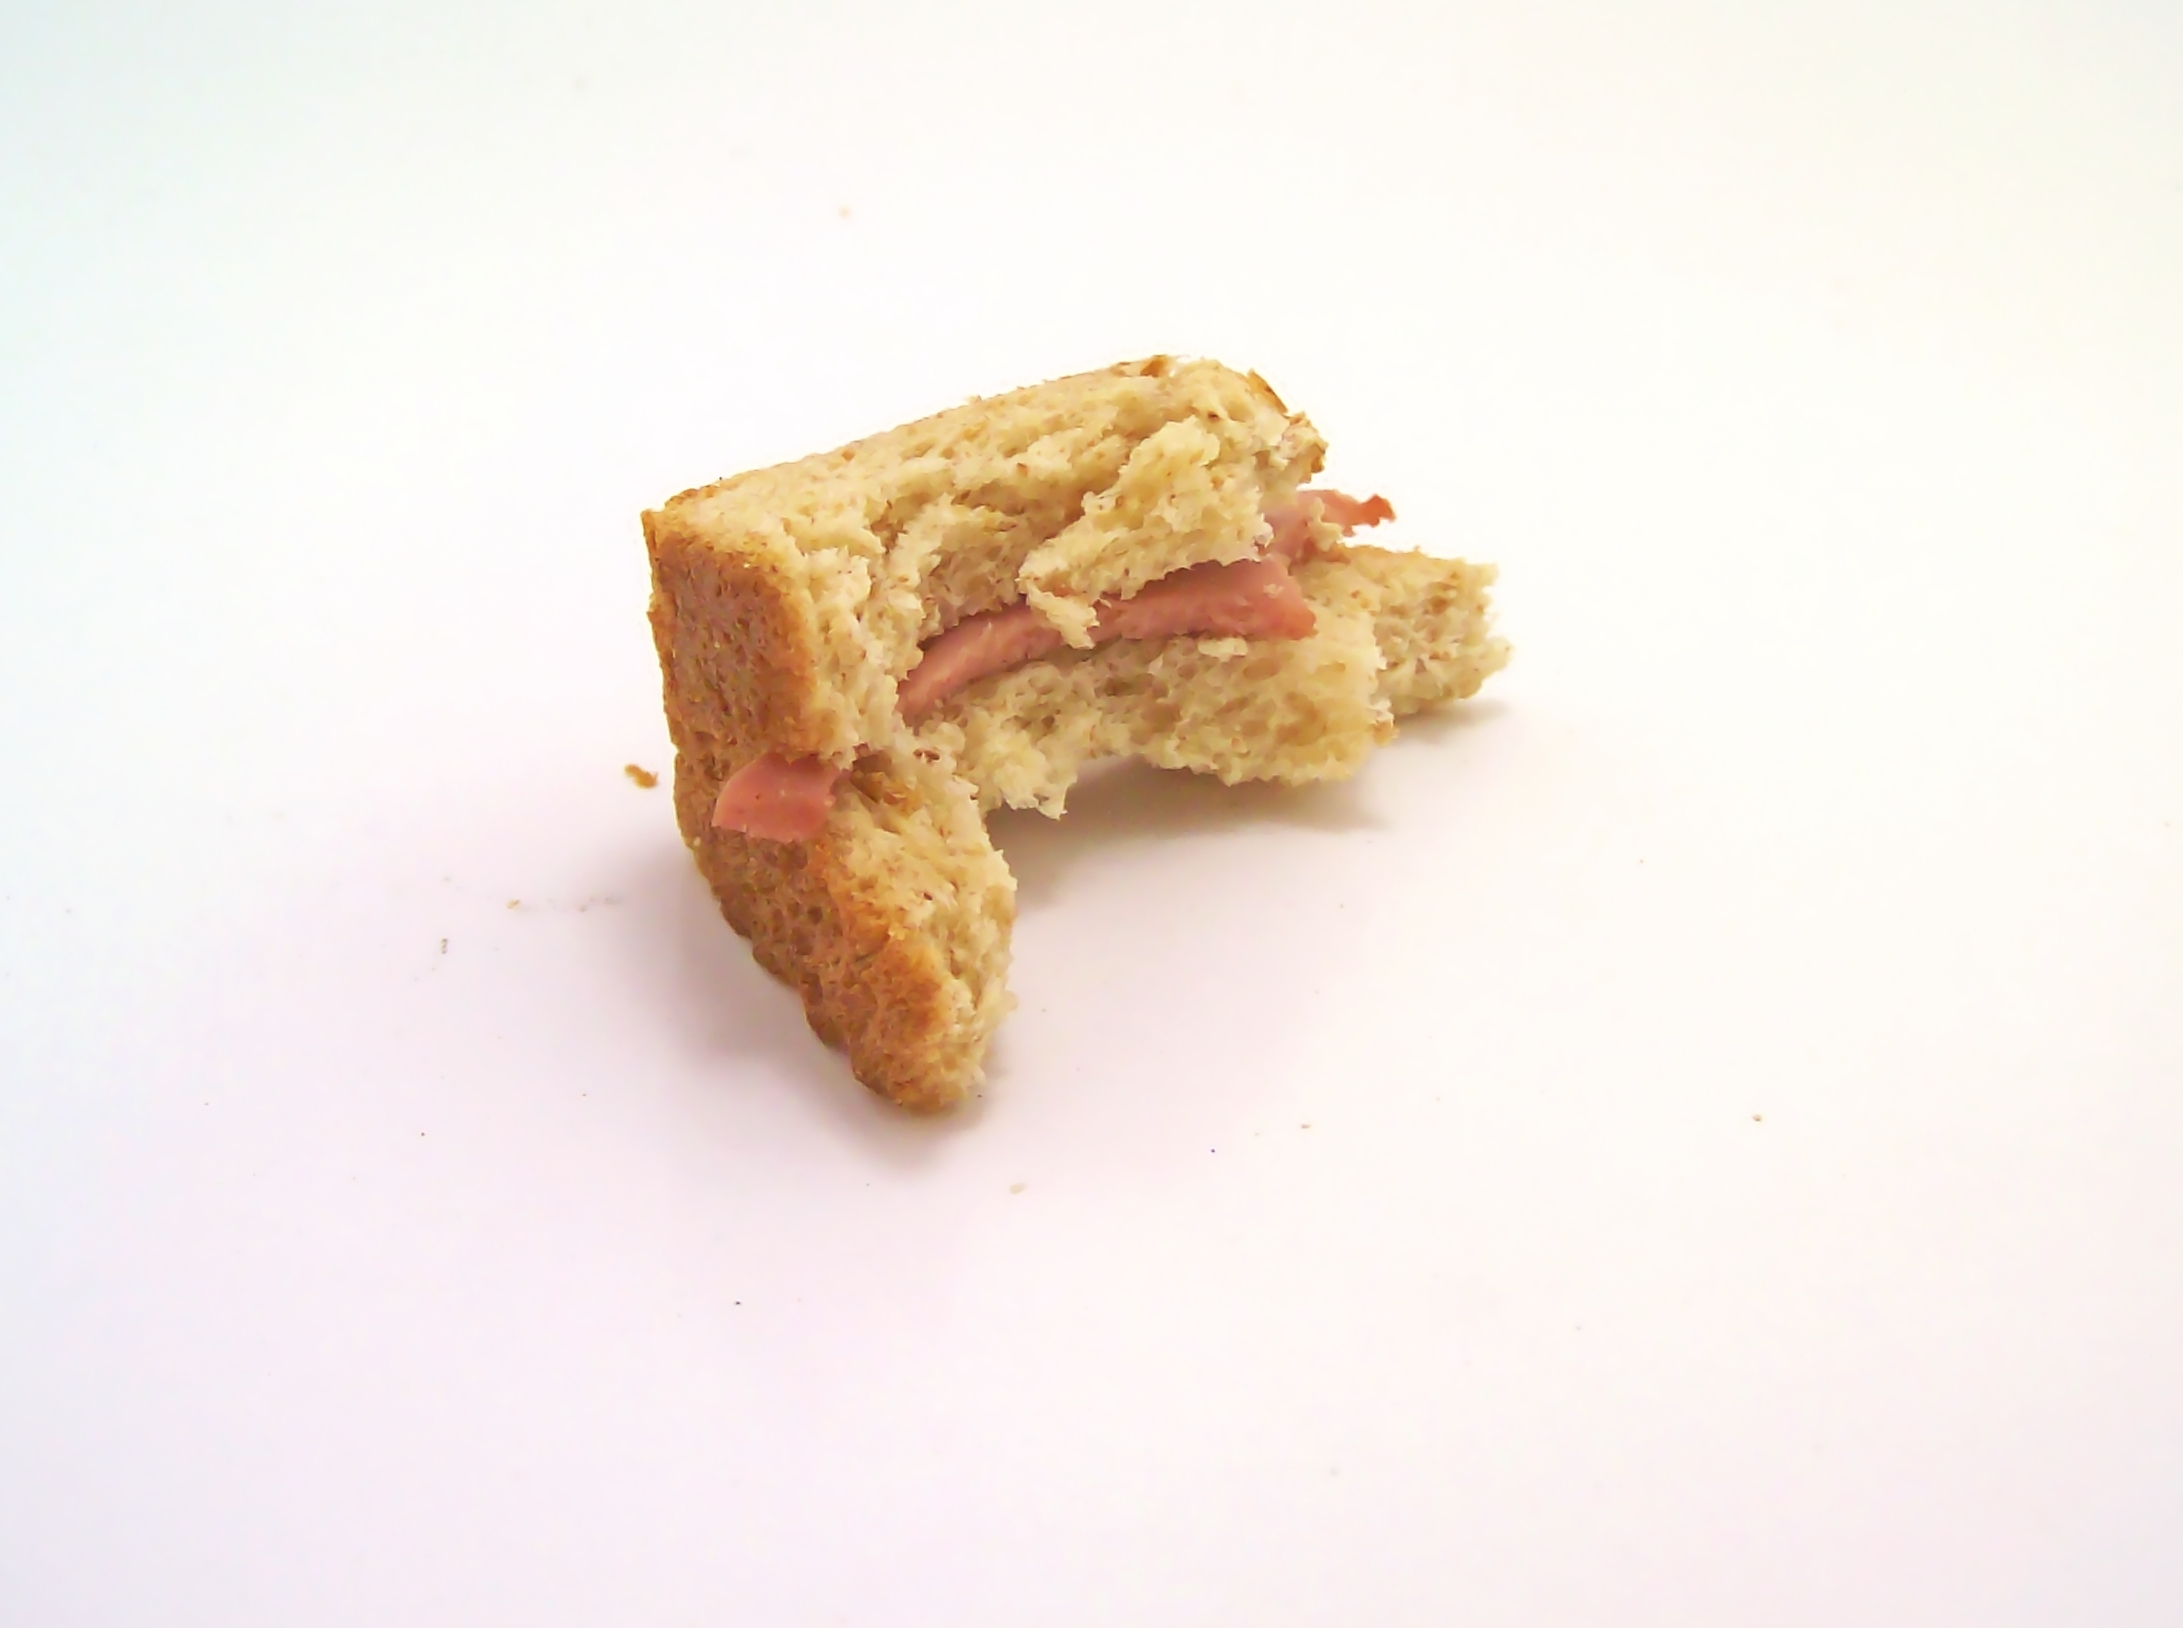 bite-of-sandwich-2.jpg